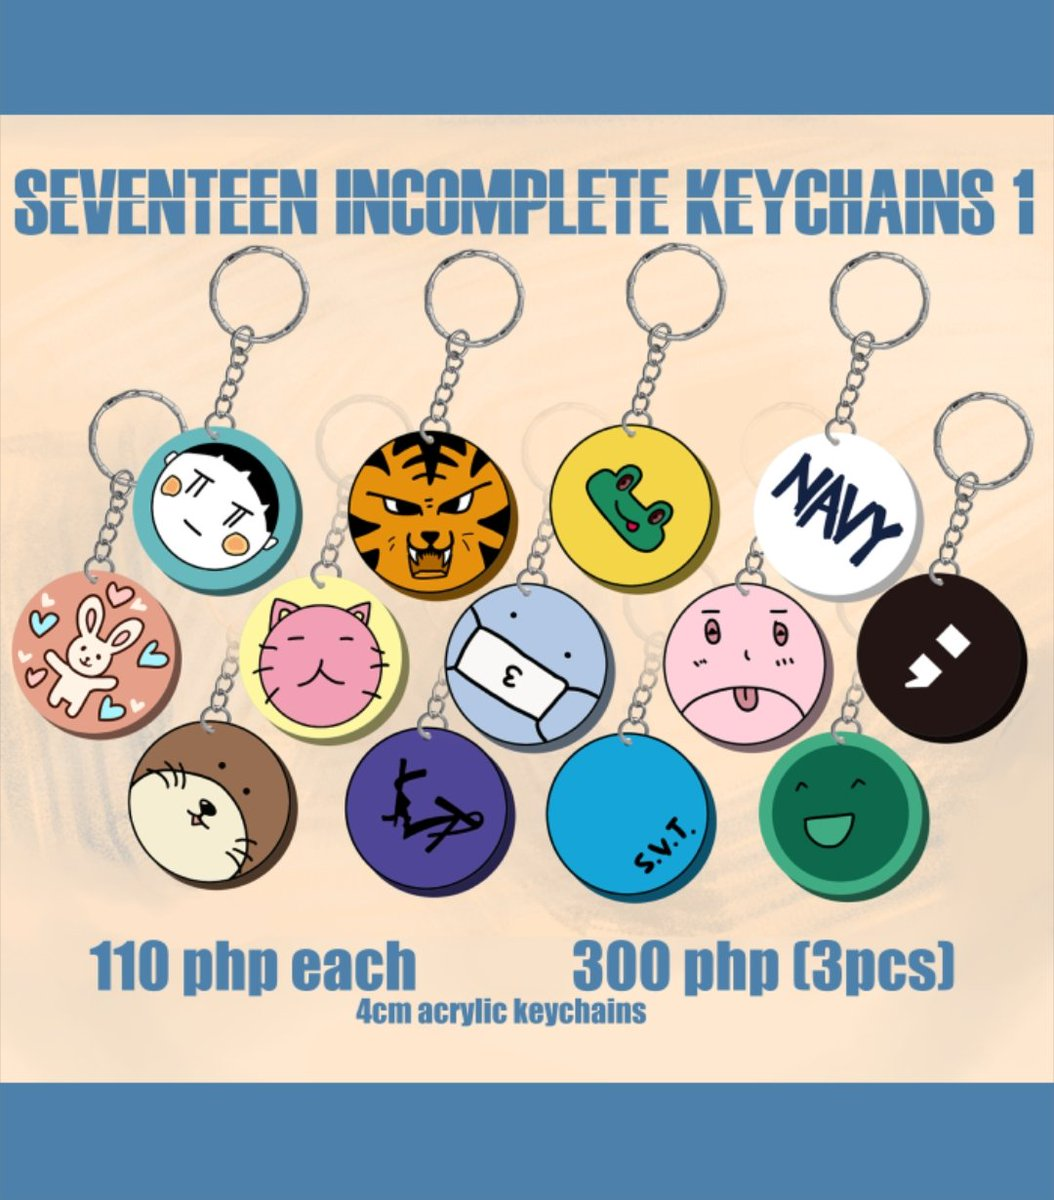 [PH GO] SEVENTEEN In-Complete Keychains #DoReMi_Orders  110 php each 300 php (3pcs)  📋For Pre-order 🗓DOO: March 25, 2021(batch 1) 💸DOP: 3 Days after order confirmation  🎶Order Form:   #SEVENTEEN #seventeenmerch #svtmerch #SVT_IN_COMPLETE